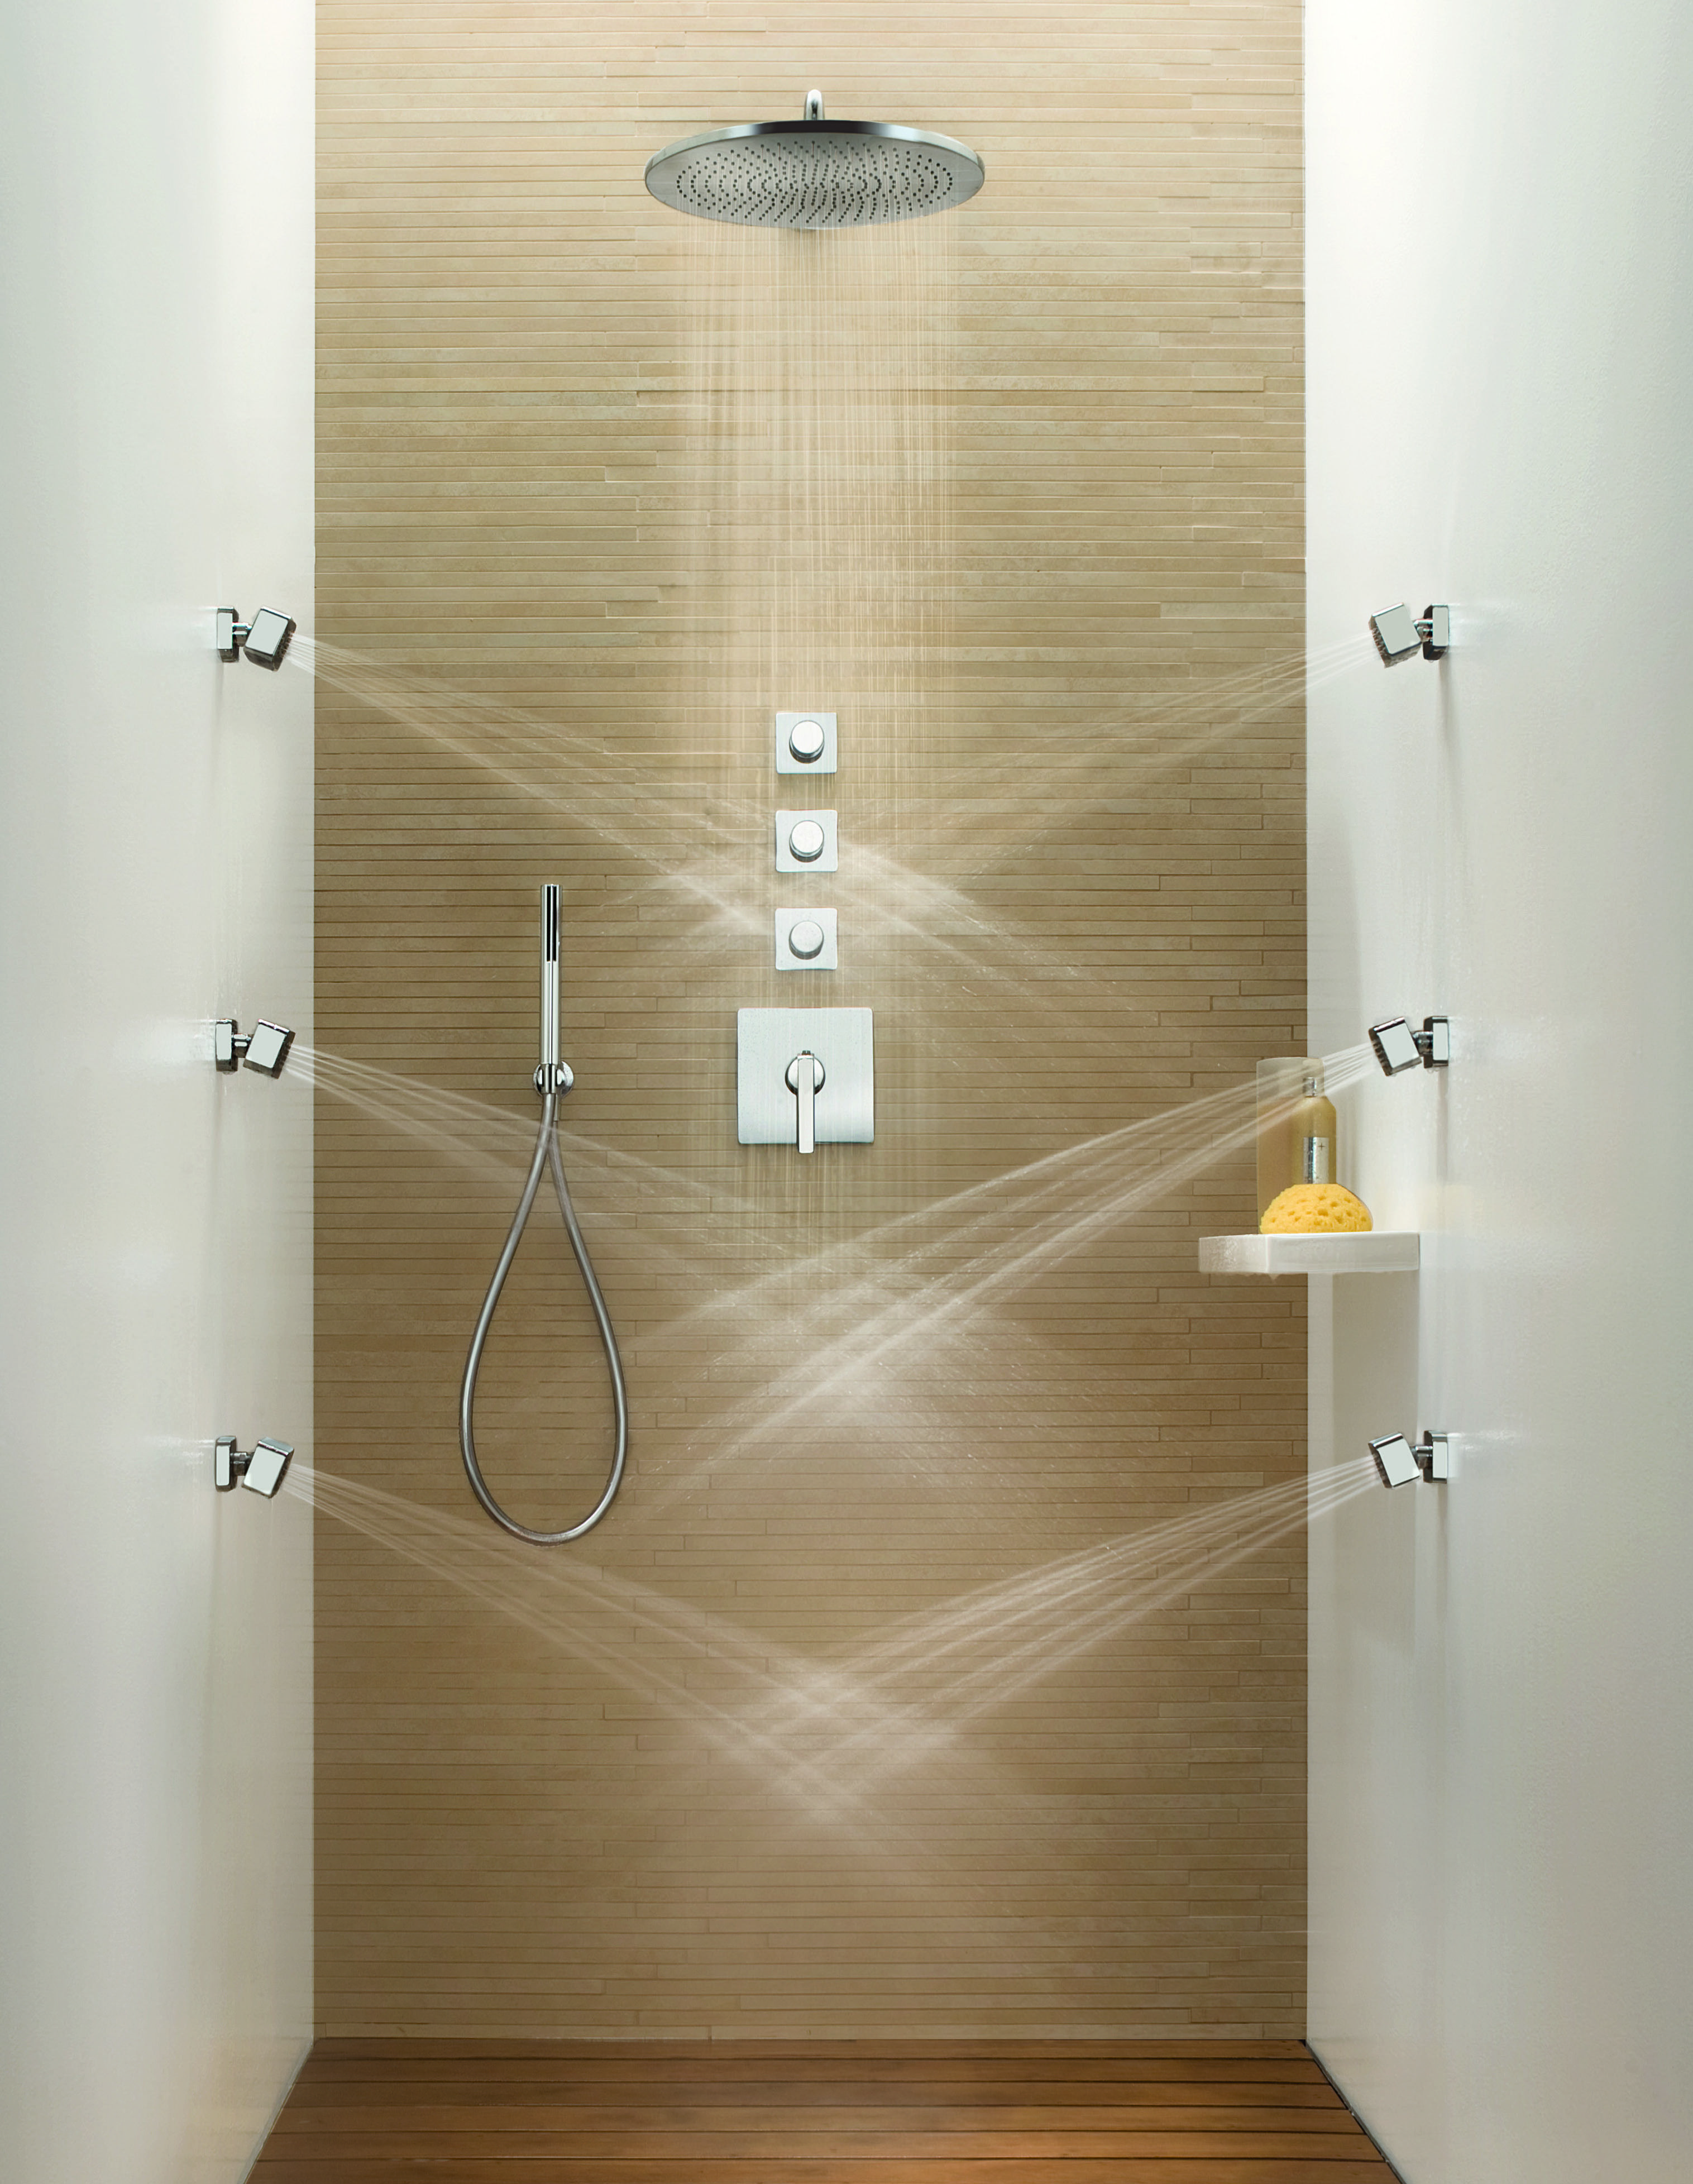 Transitional Dolce Wall Mount Body Spray By Fantini Dream Shower